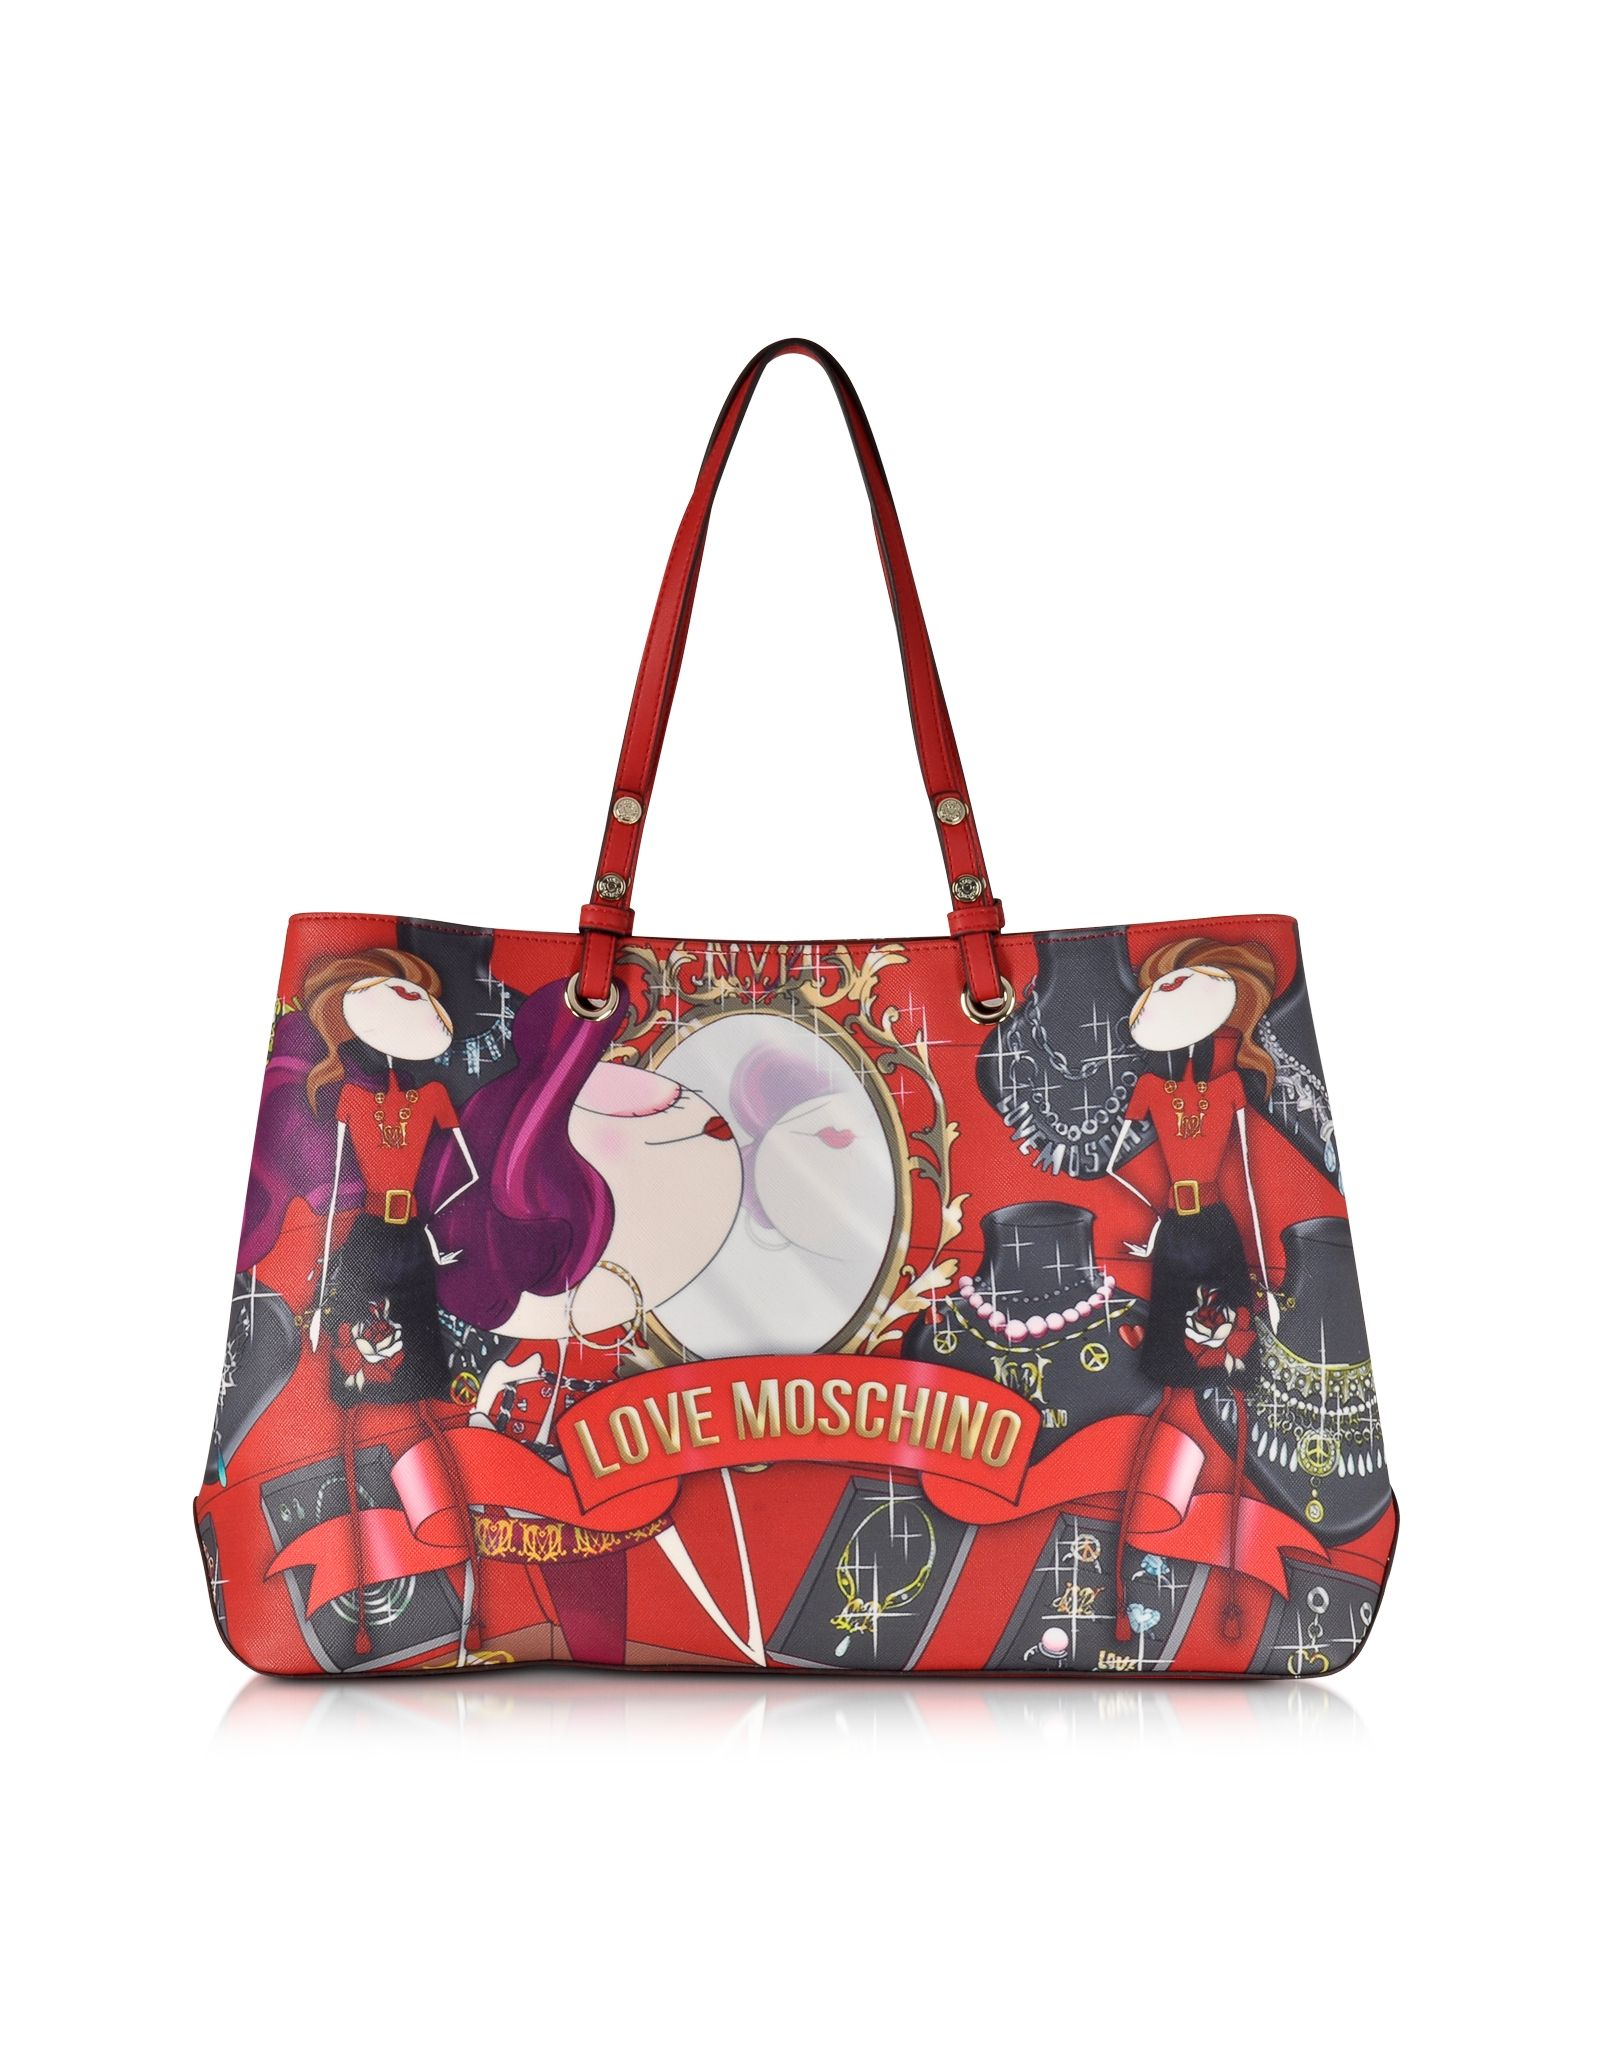 Love Moschino Red Large Saffiano Eco Leather Tote w/Girl Print at FORZIERI Canada